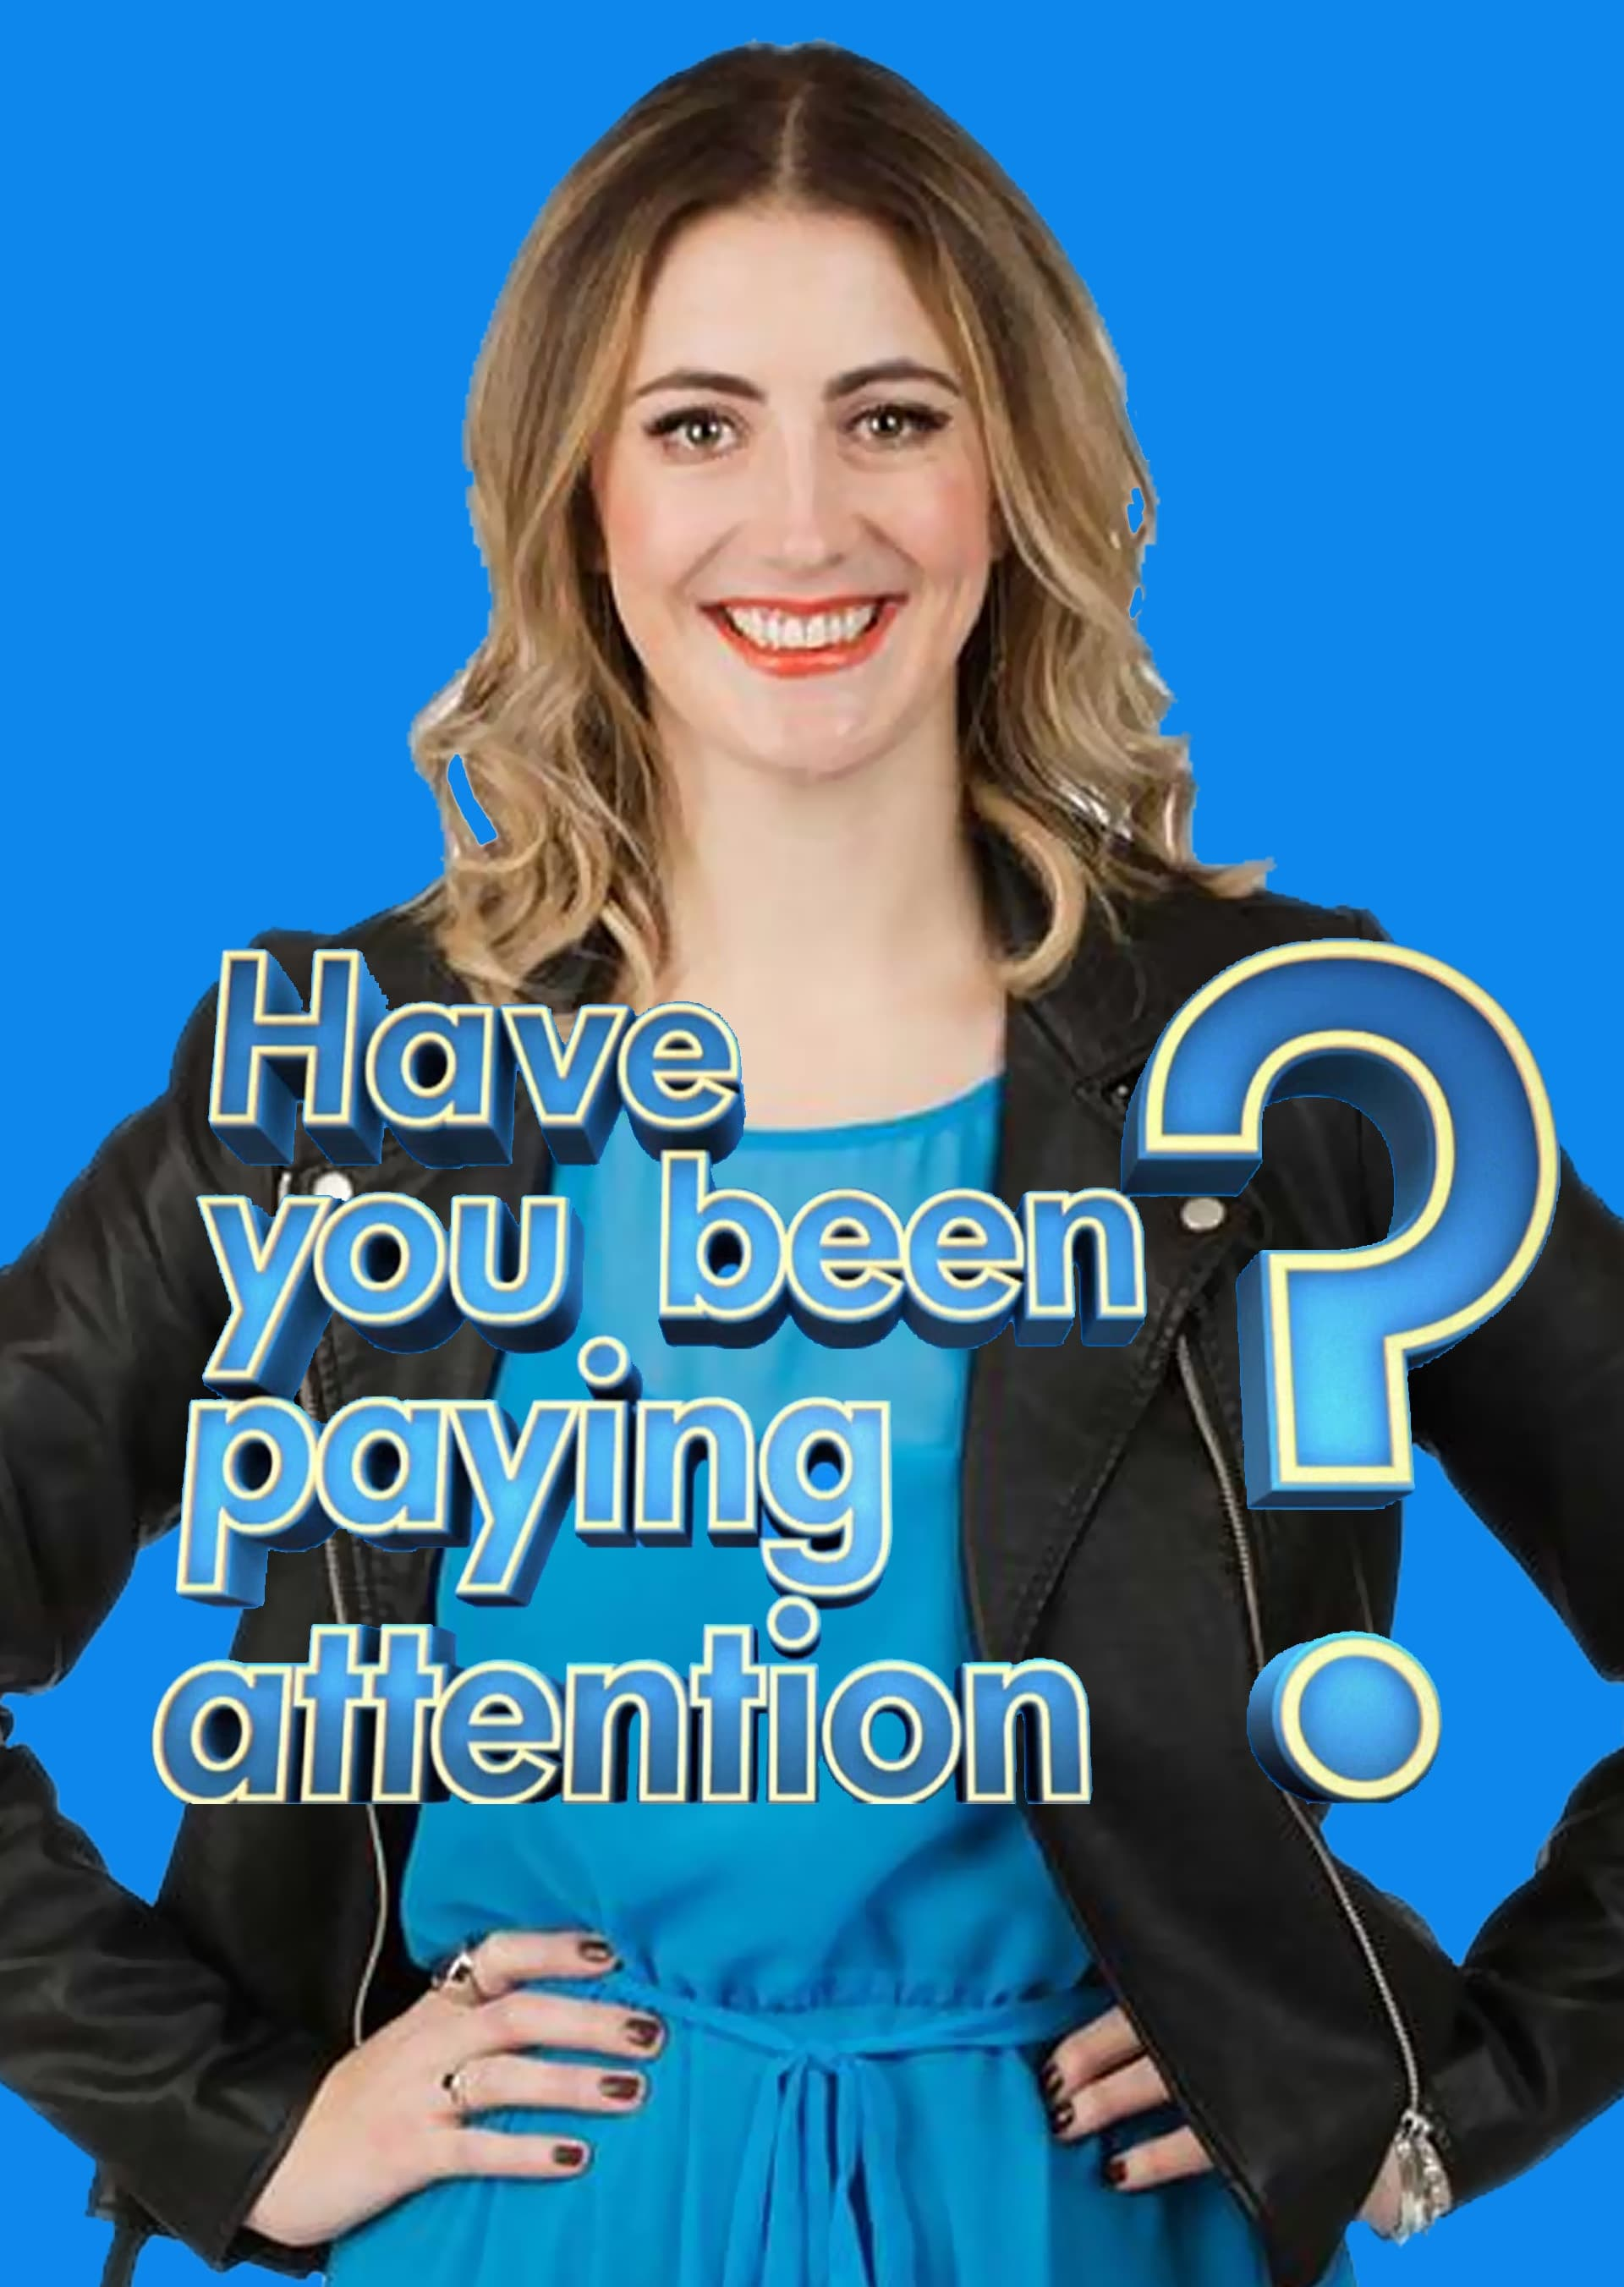 Have You Been Paying Attention? (NZ)